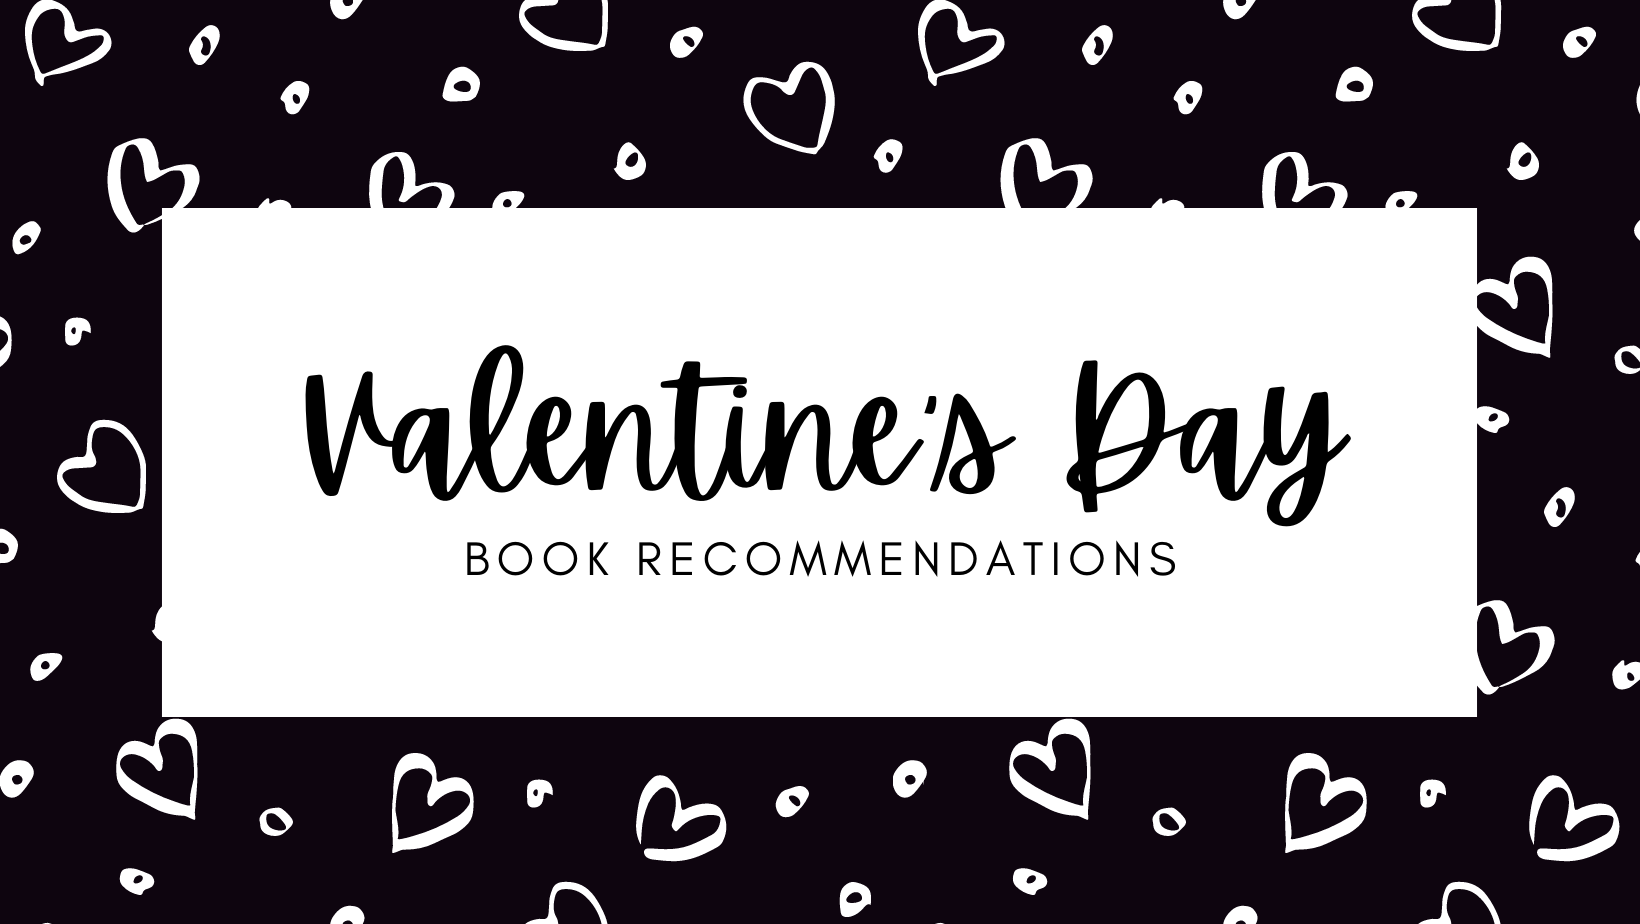 valentine's day book recommendations